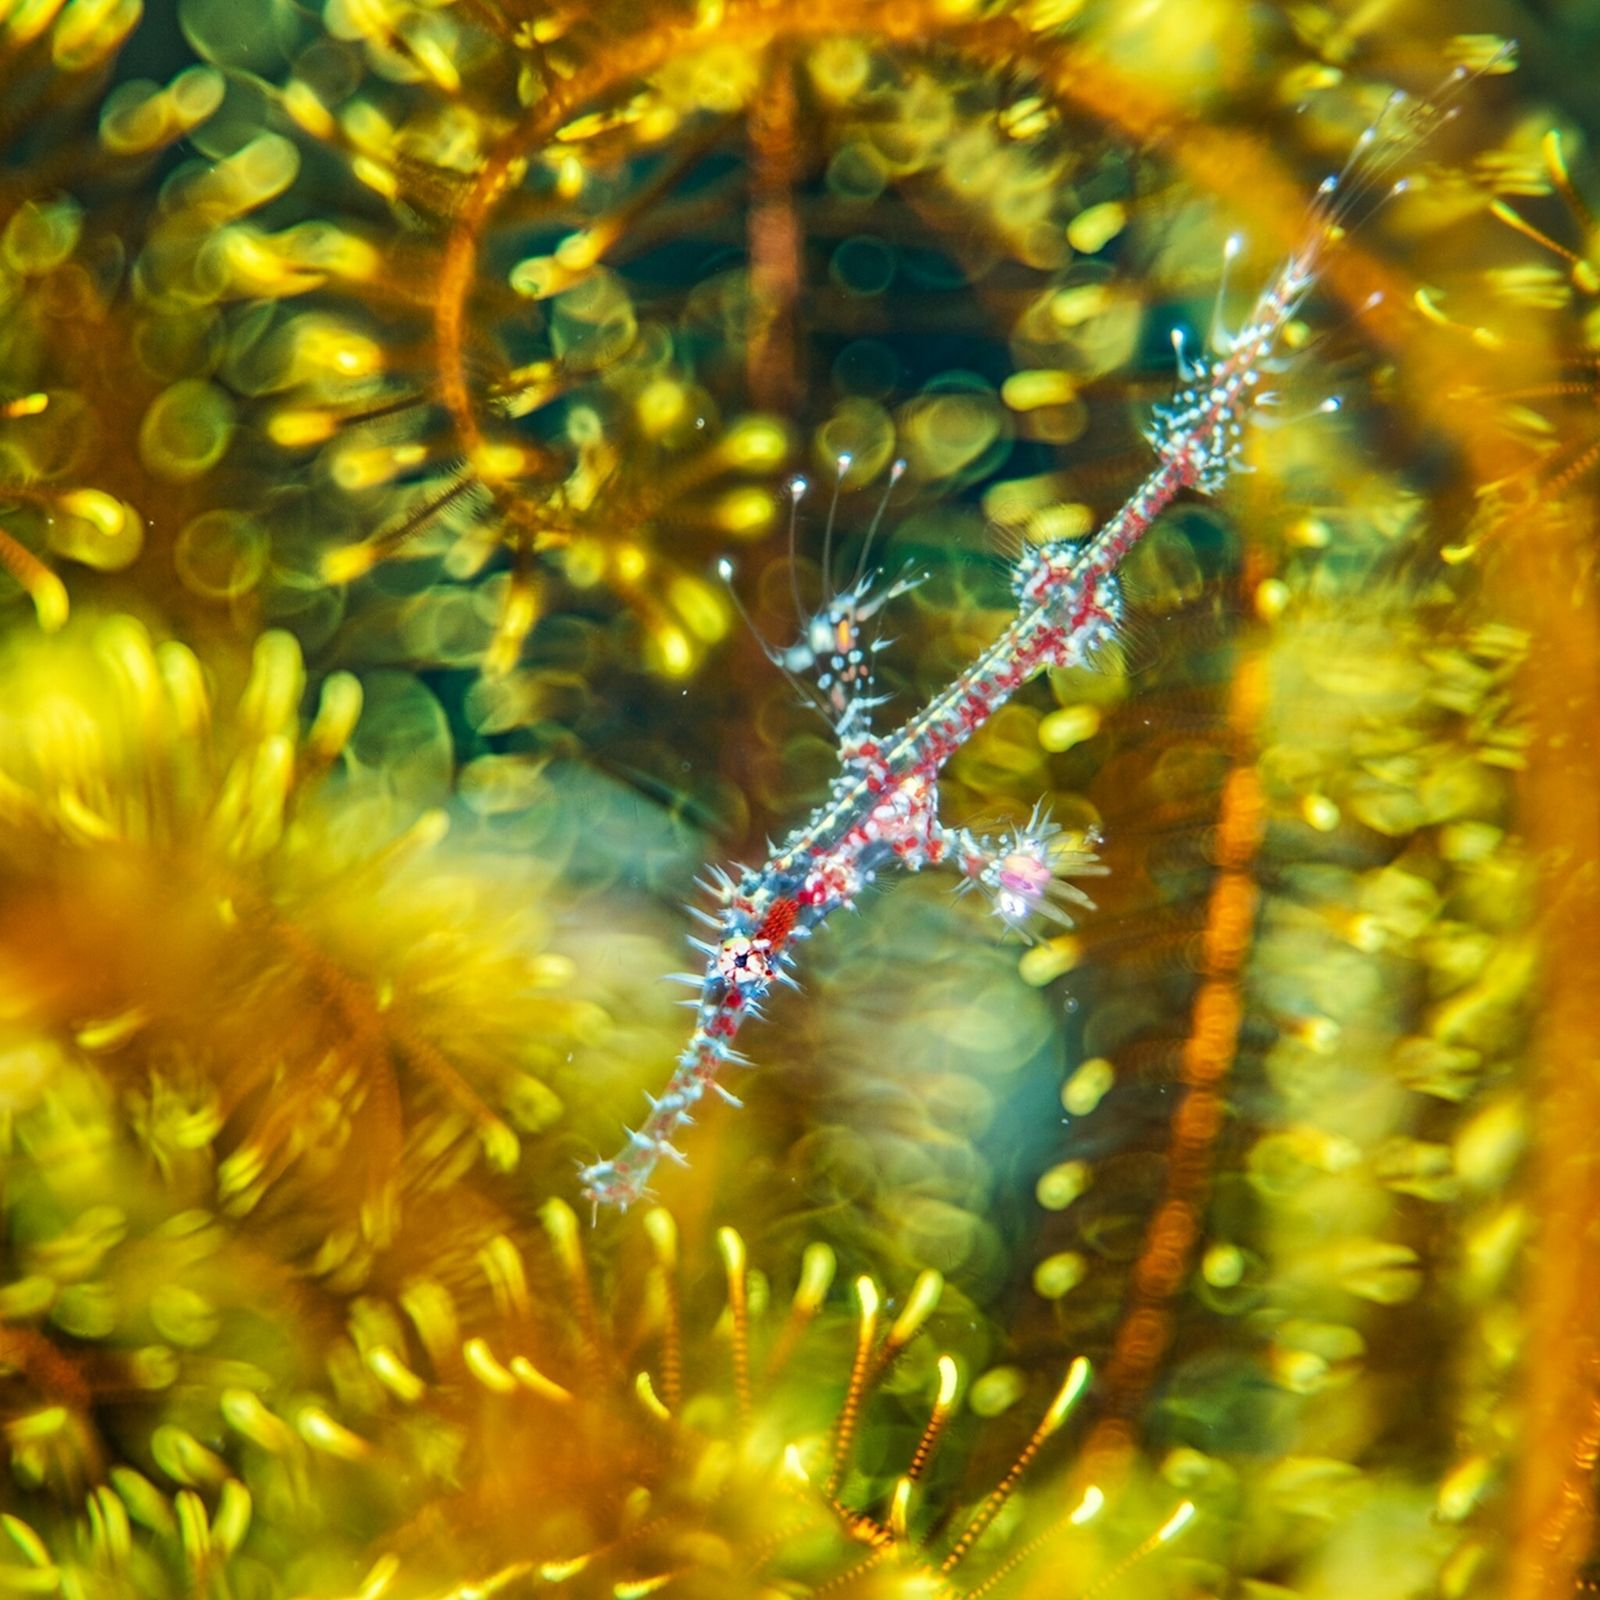 Alex Mustard, based in the U.K., found a ghost pipefish hiding among the arms of a ...